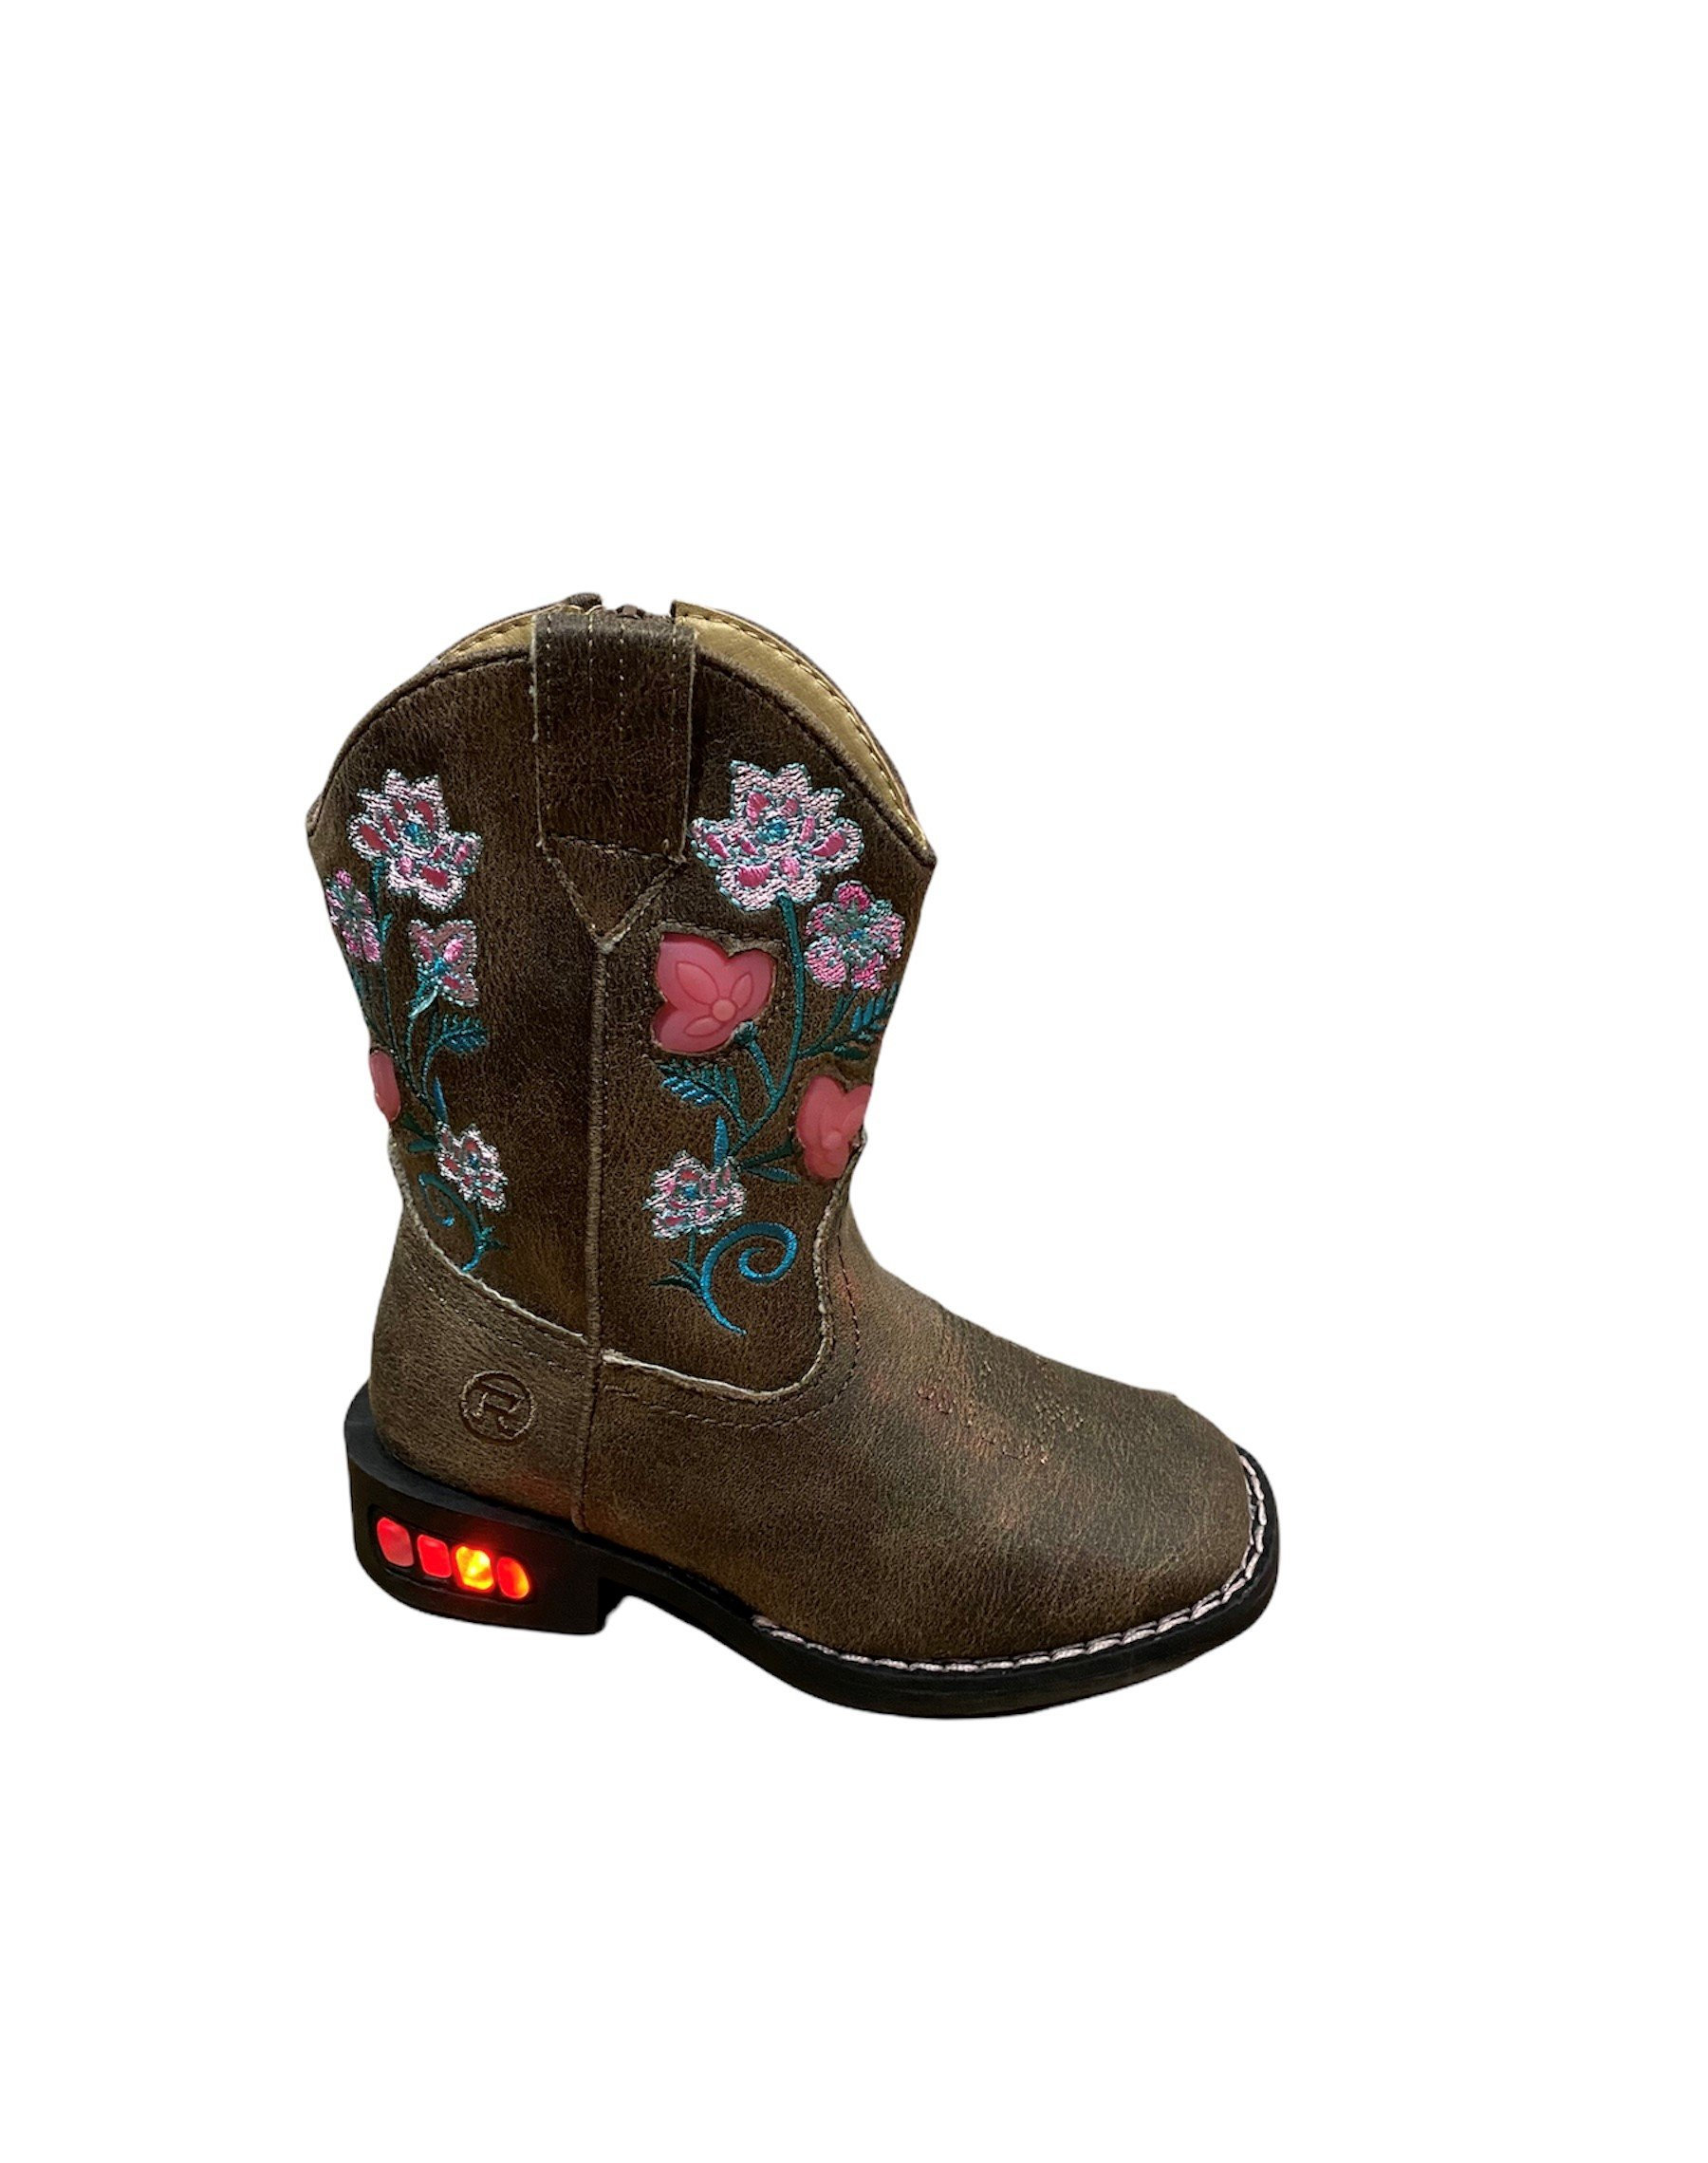 Ariat Girls Roper Dazzle Floral Light Up Boots Size 1 at Bowral Coop